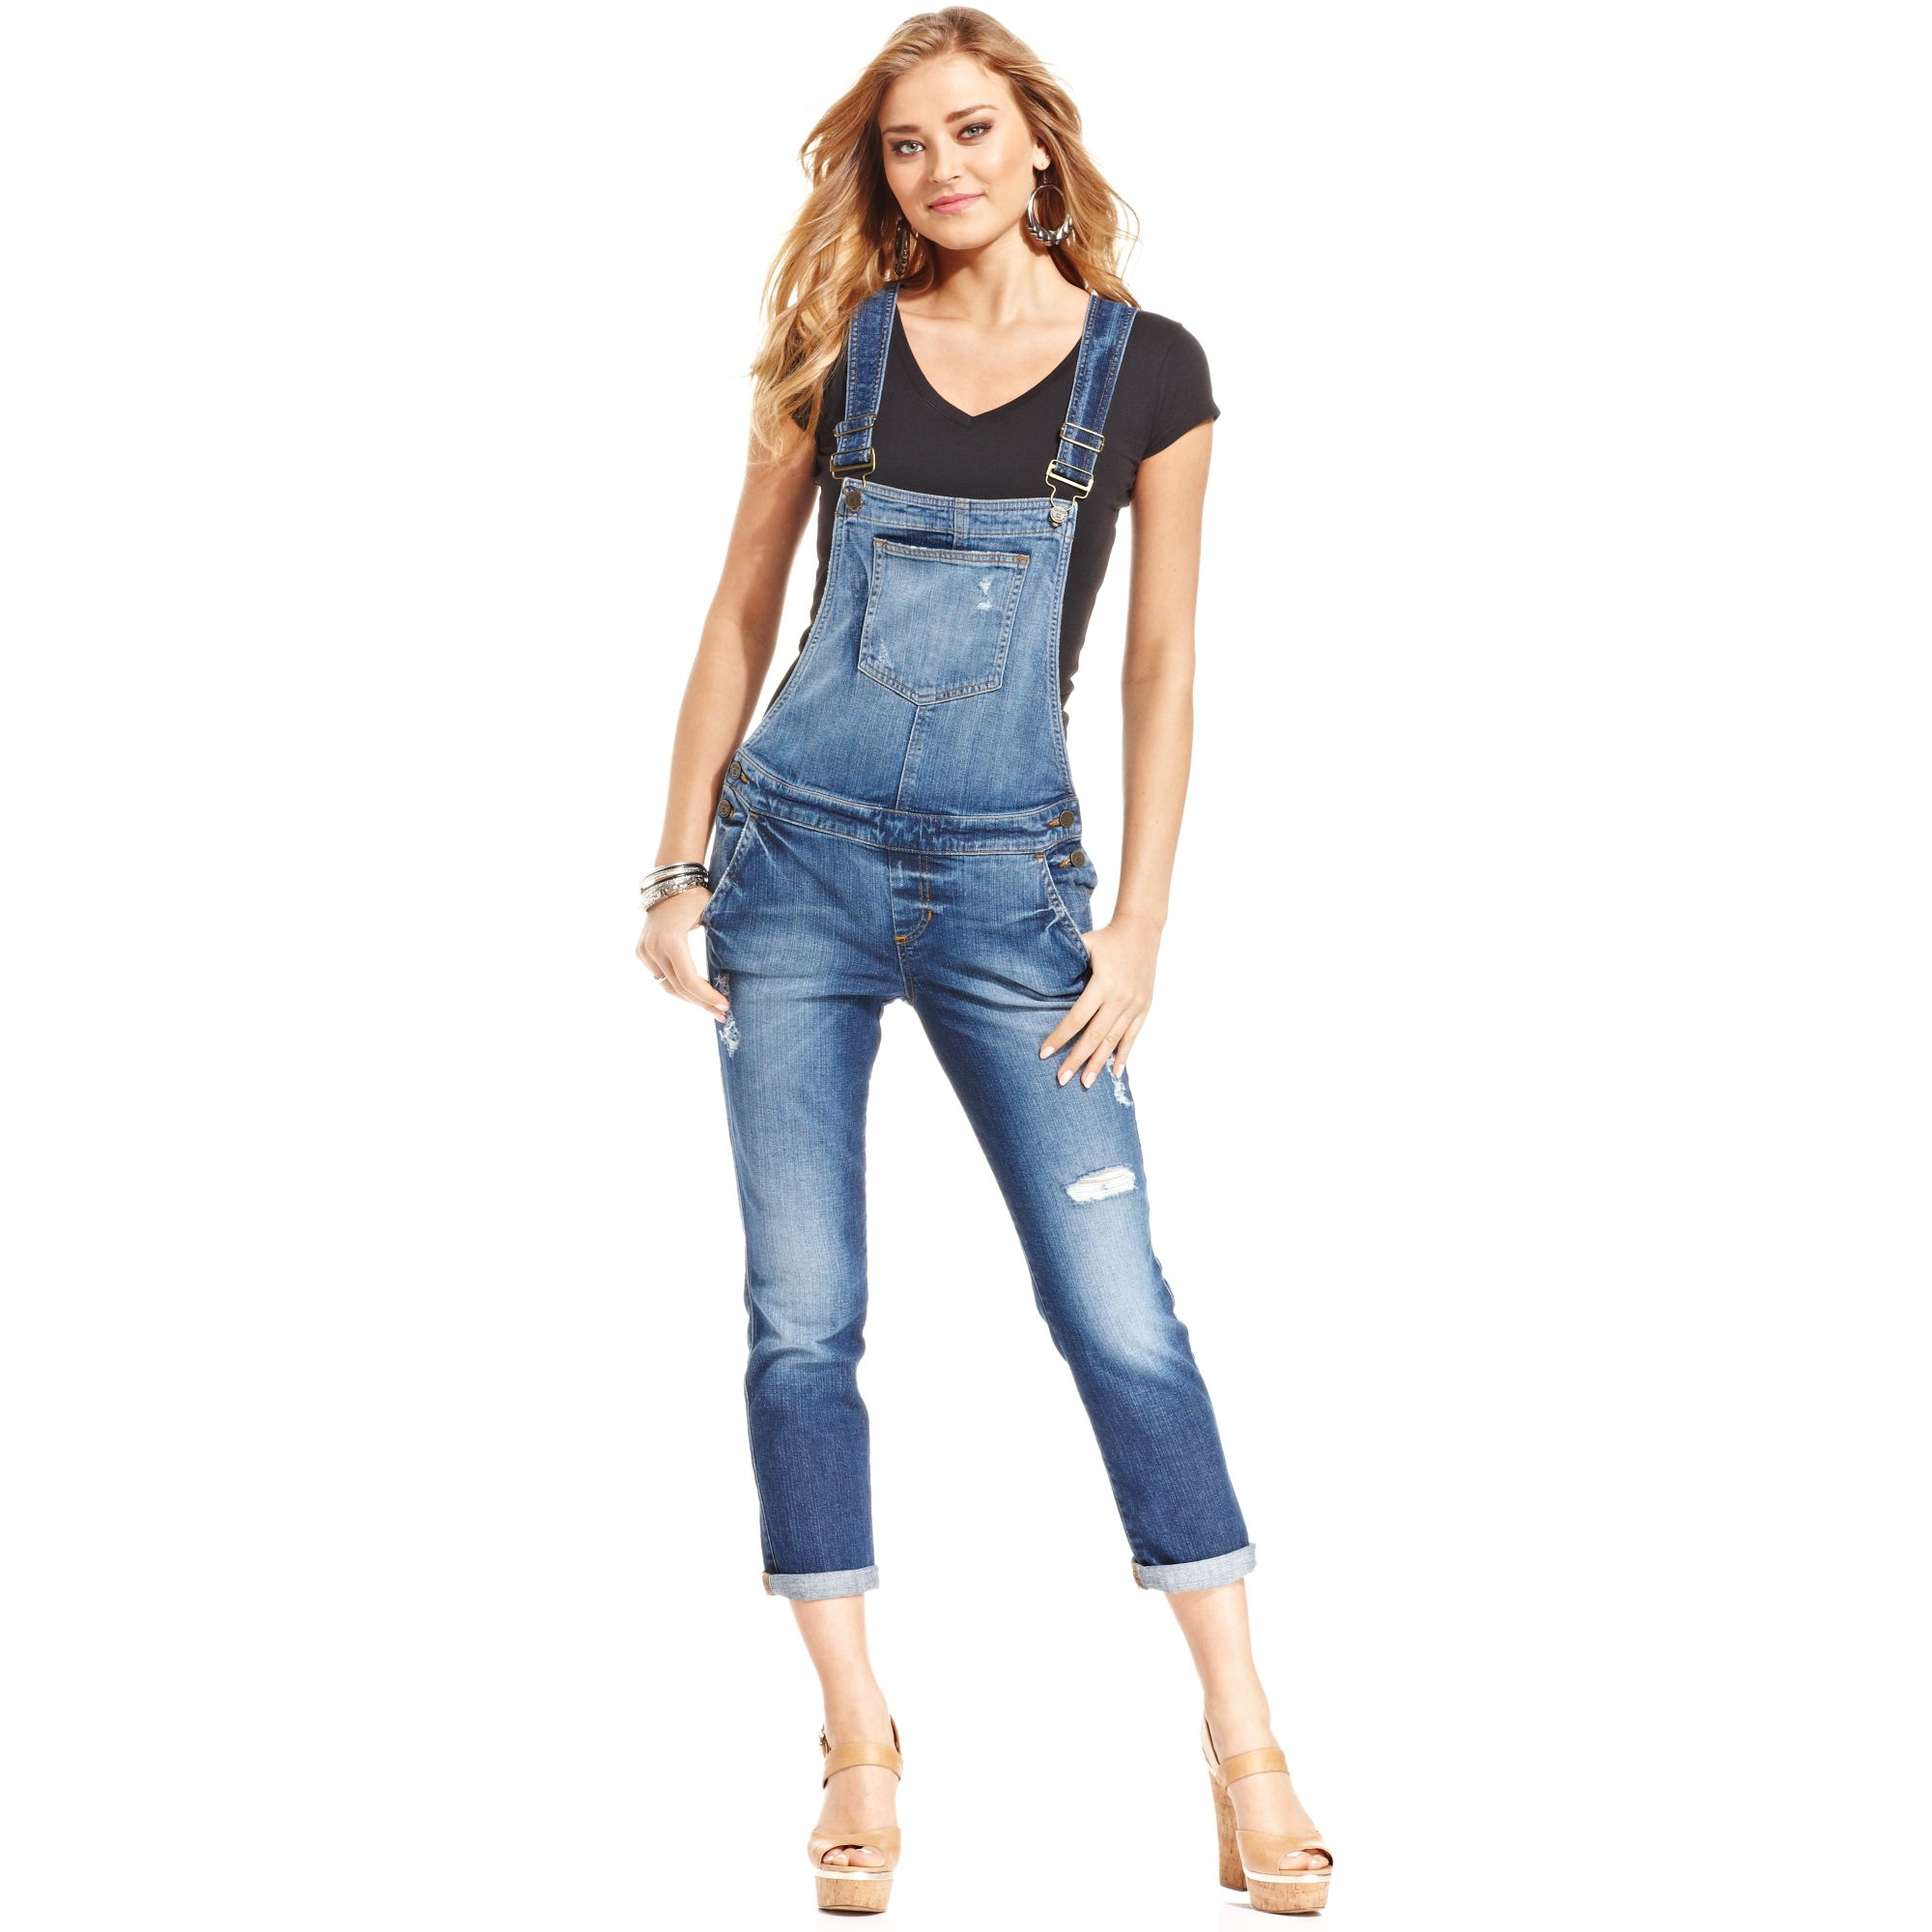 ac3a47268853 Gallery. Previously sold at  Macy s · Women s Denim Overalls Women s Denim  Jumpsuits Women s Guess ...